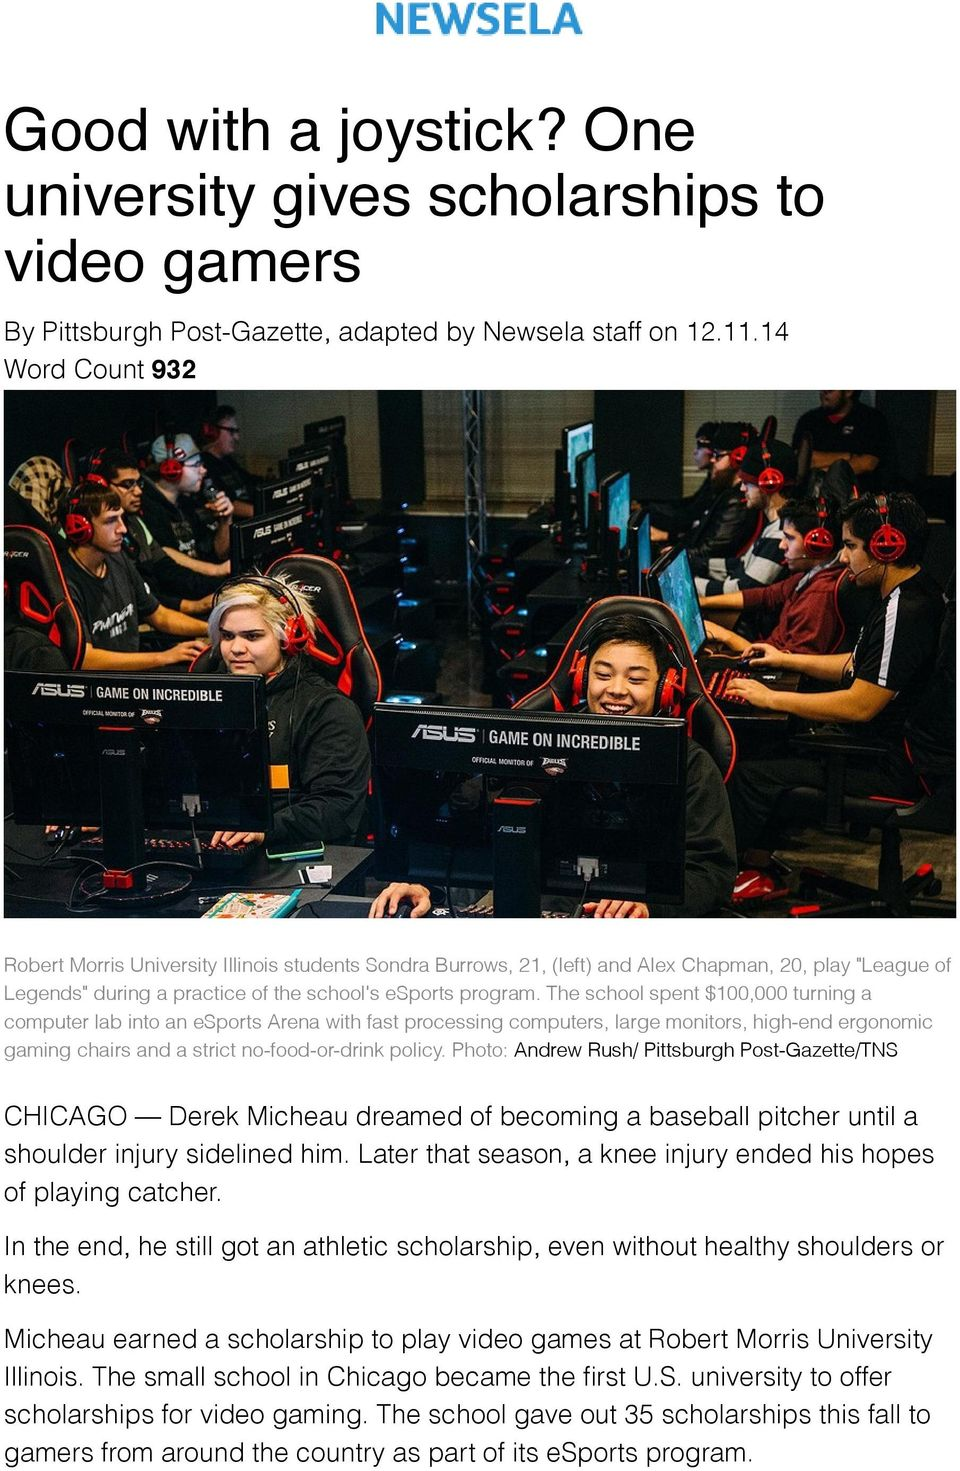 The school spent $100,000 turning a computer lab into an esports Arena with fast processing computers, large monitors, high-end ergonomic gaming chairs and a strict no-food-or-drink policy.